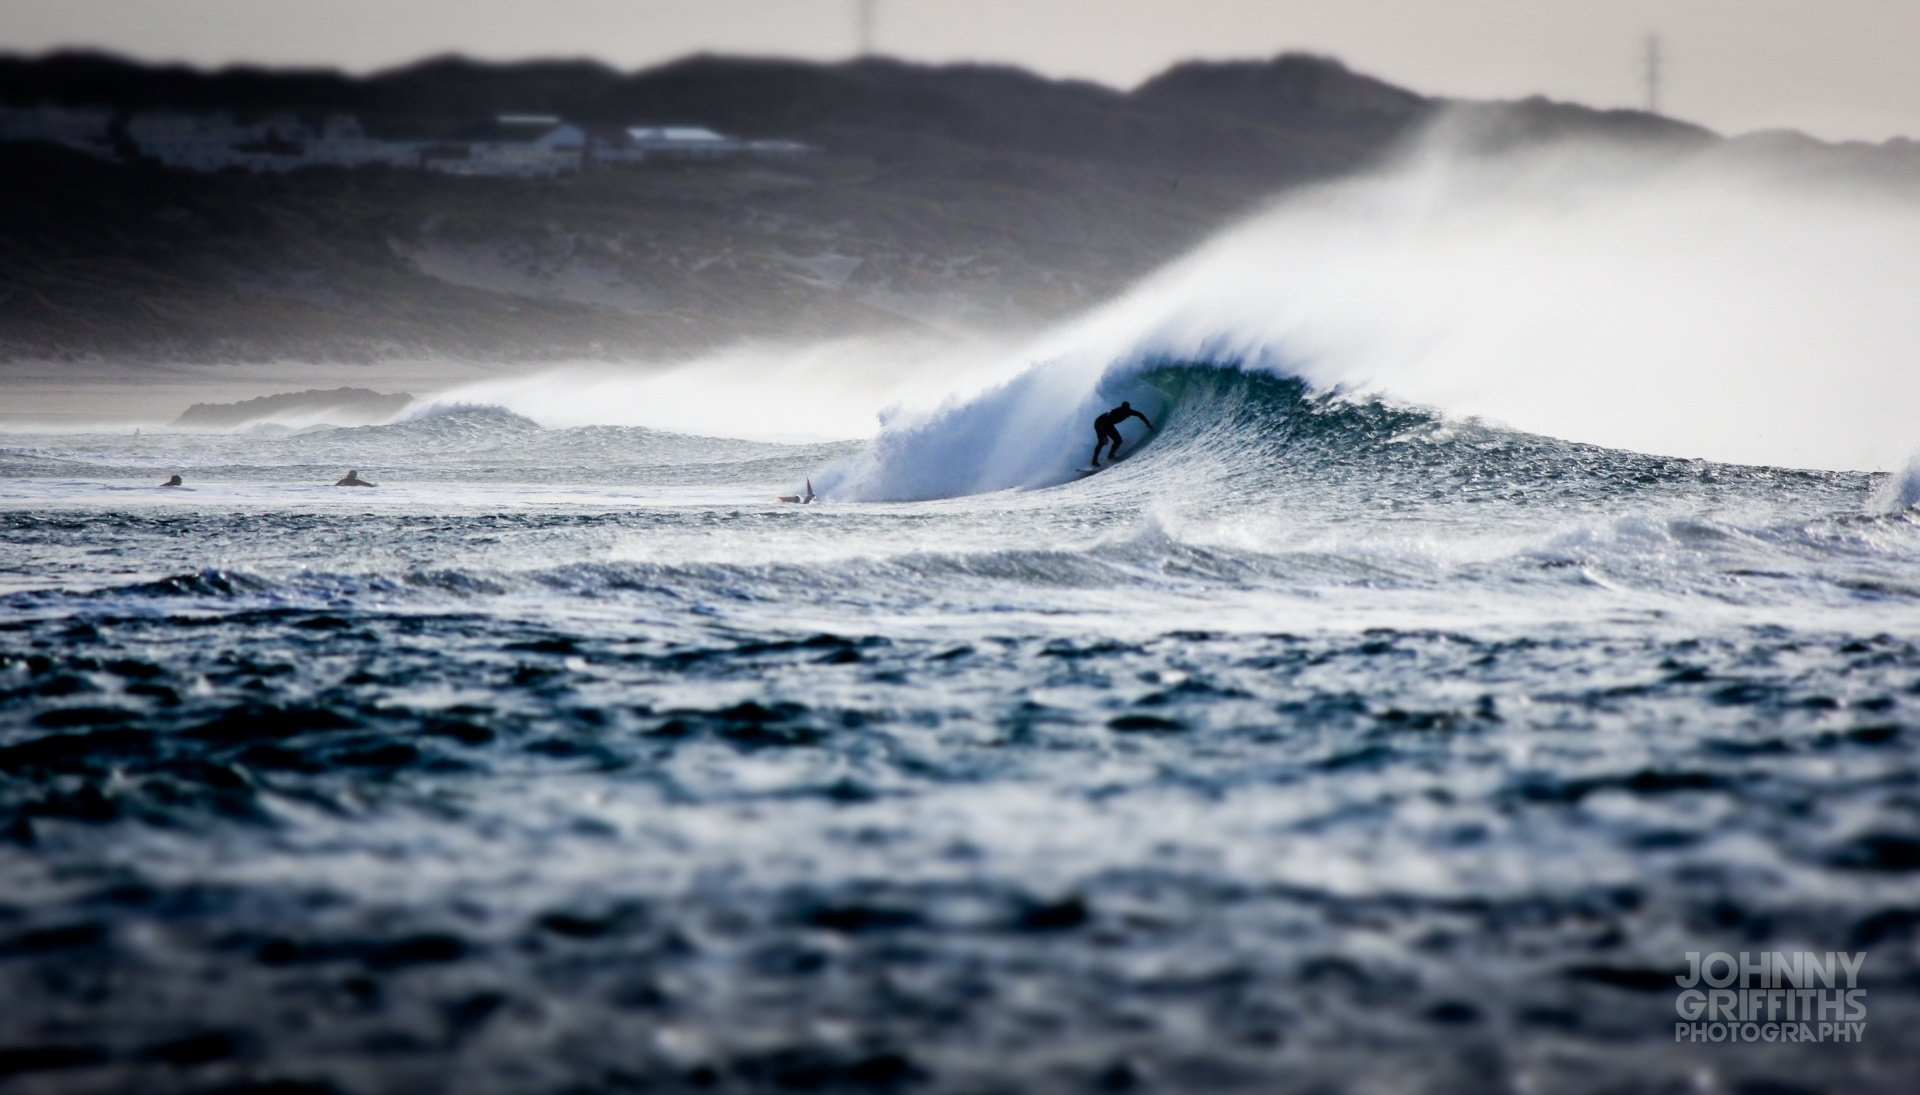 Johnny Griffiths Photography's photo of Godrevy